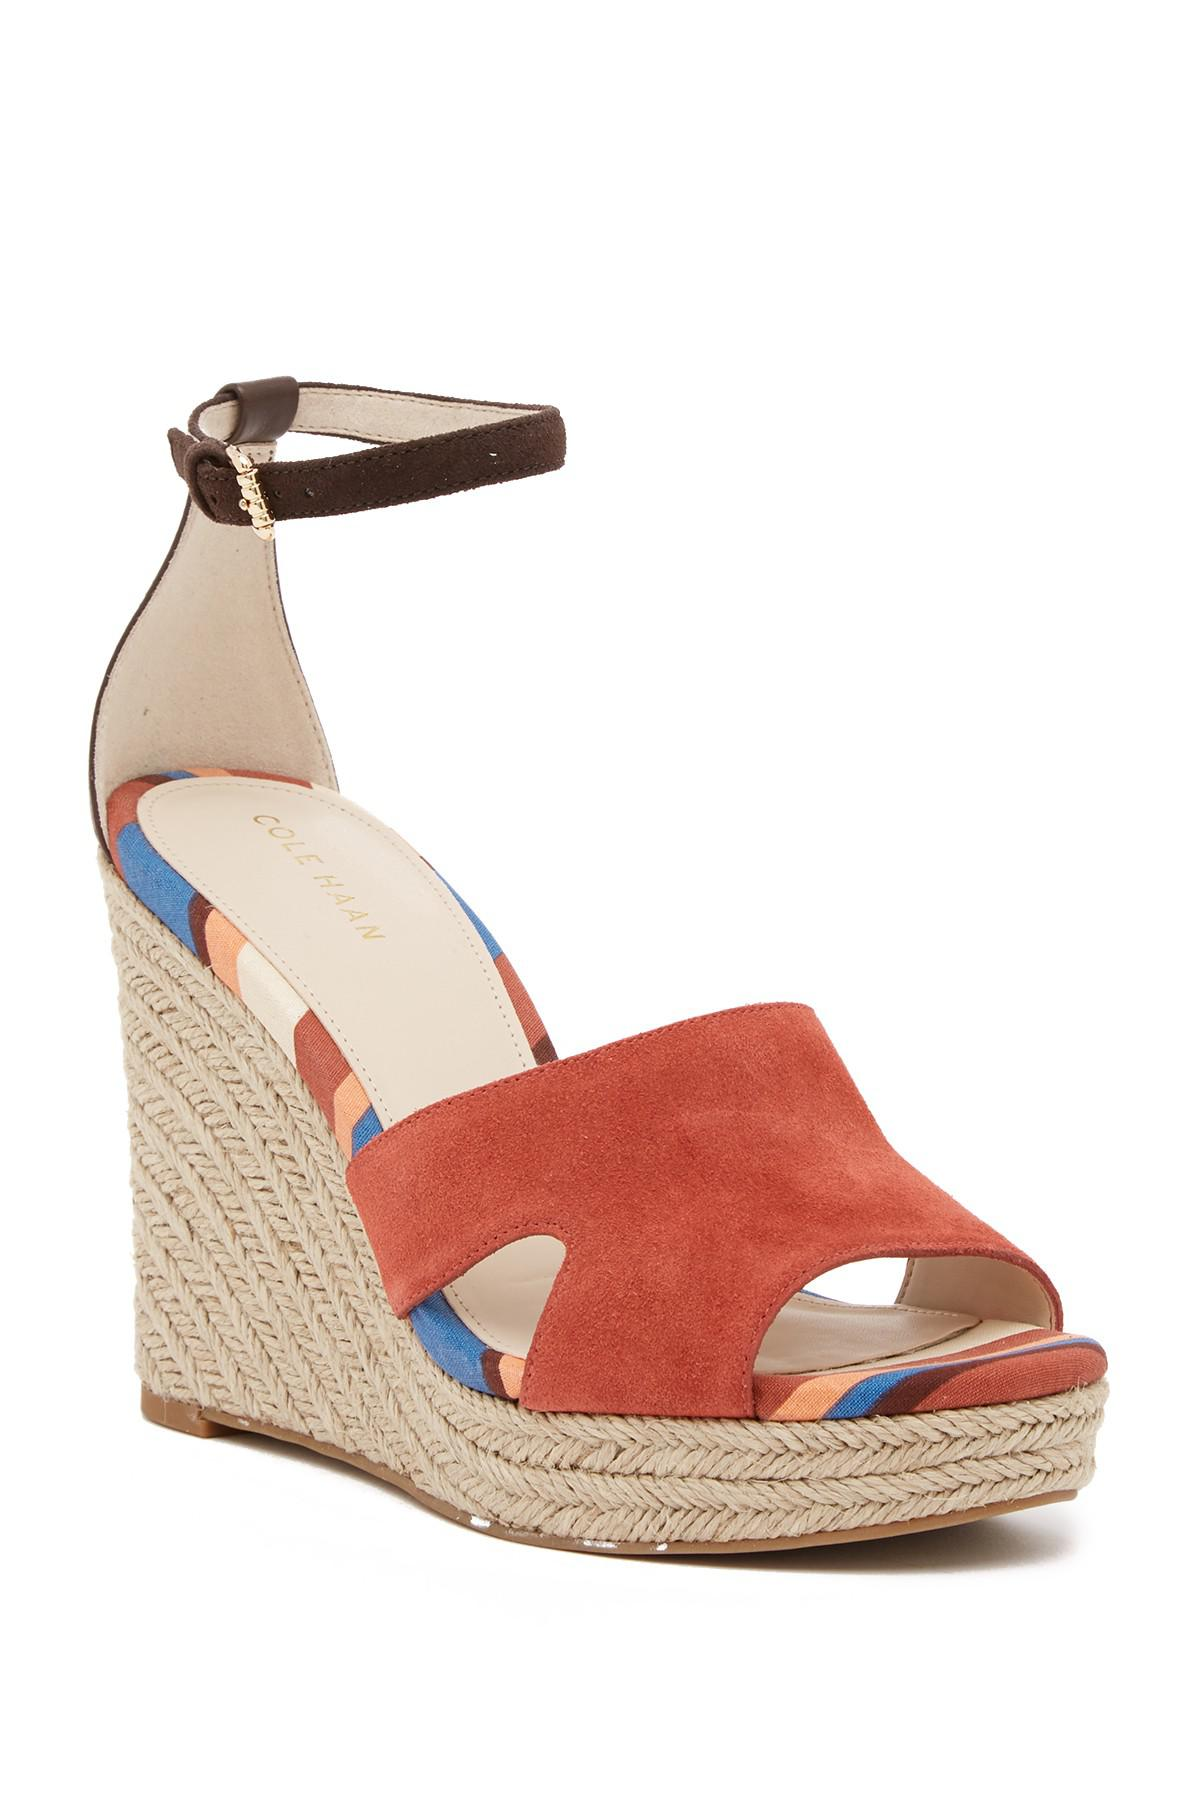 Cole Haan Giselle High Espadrille Wedge II Sandal (Women's)